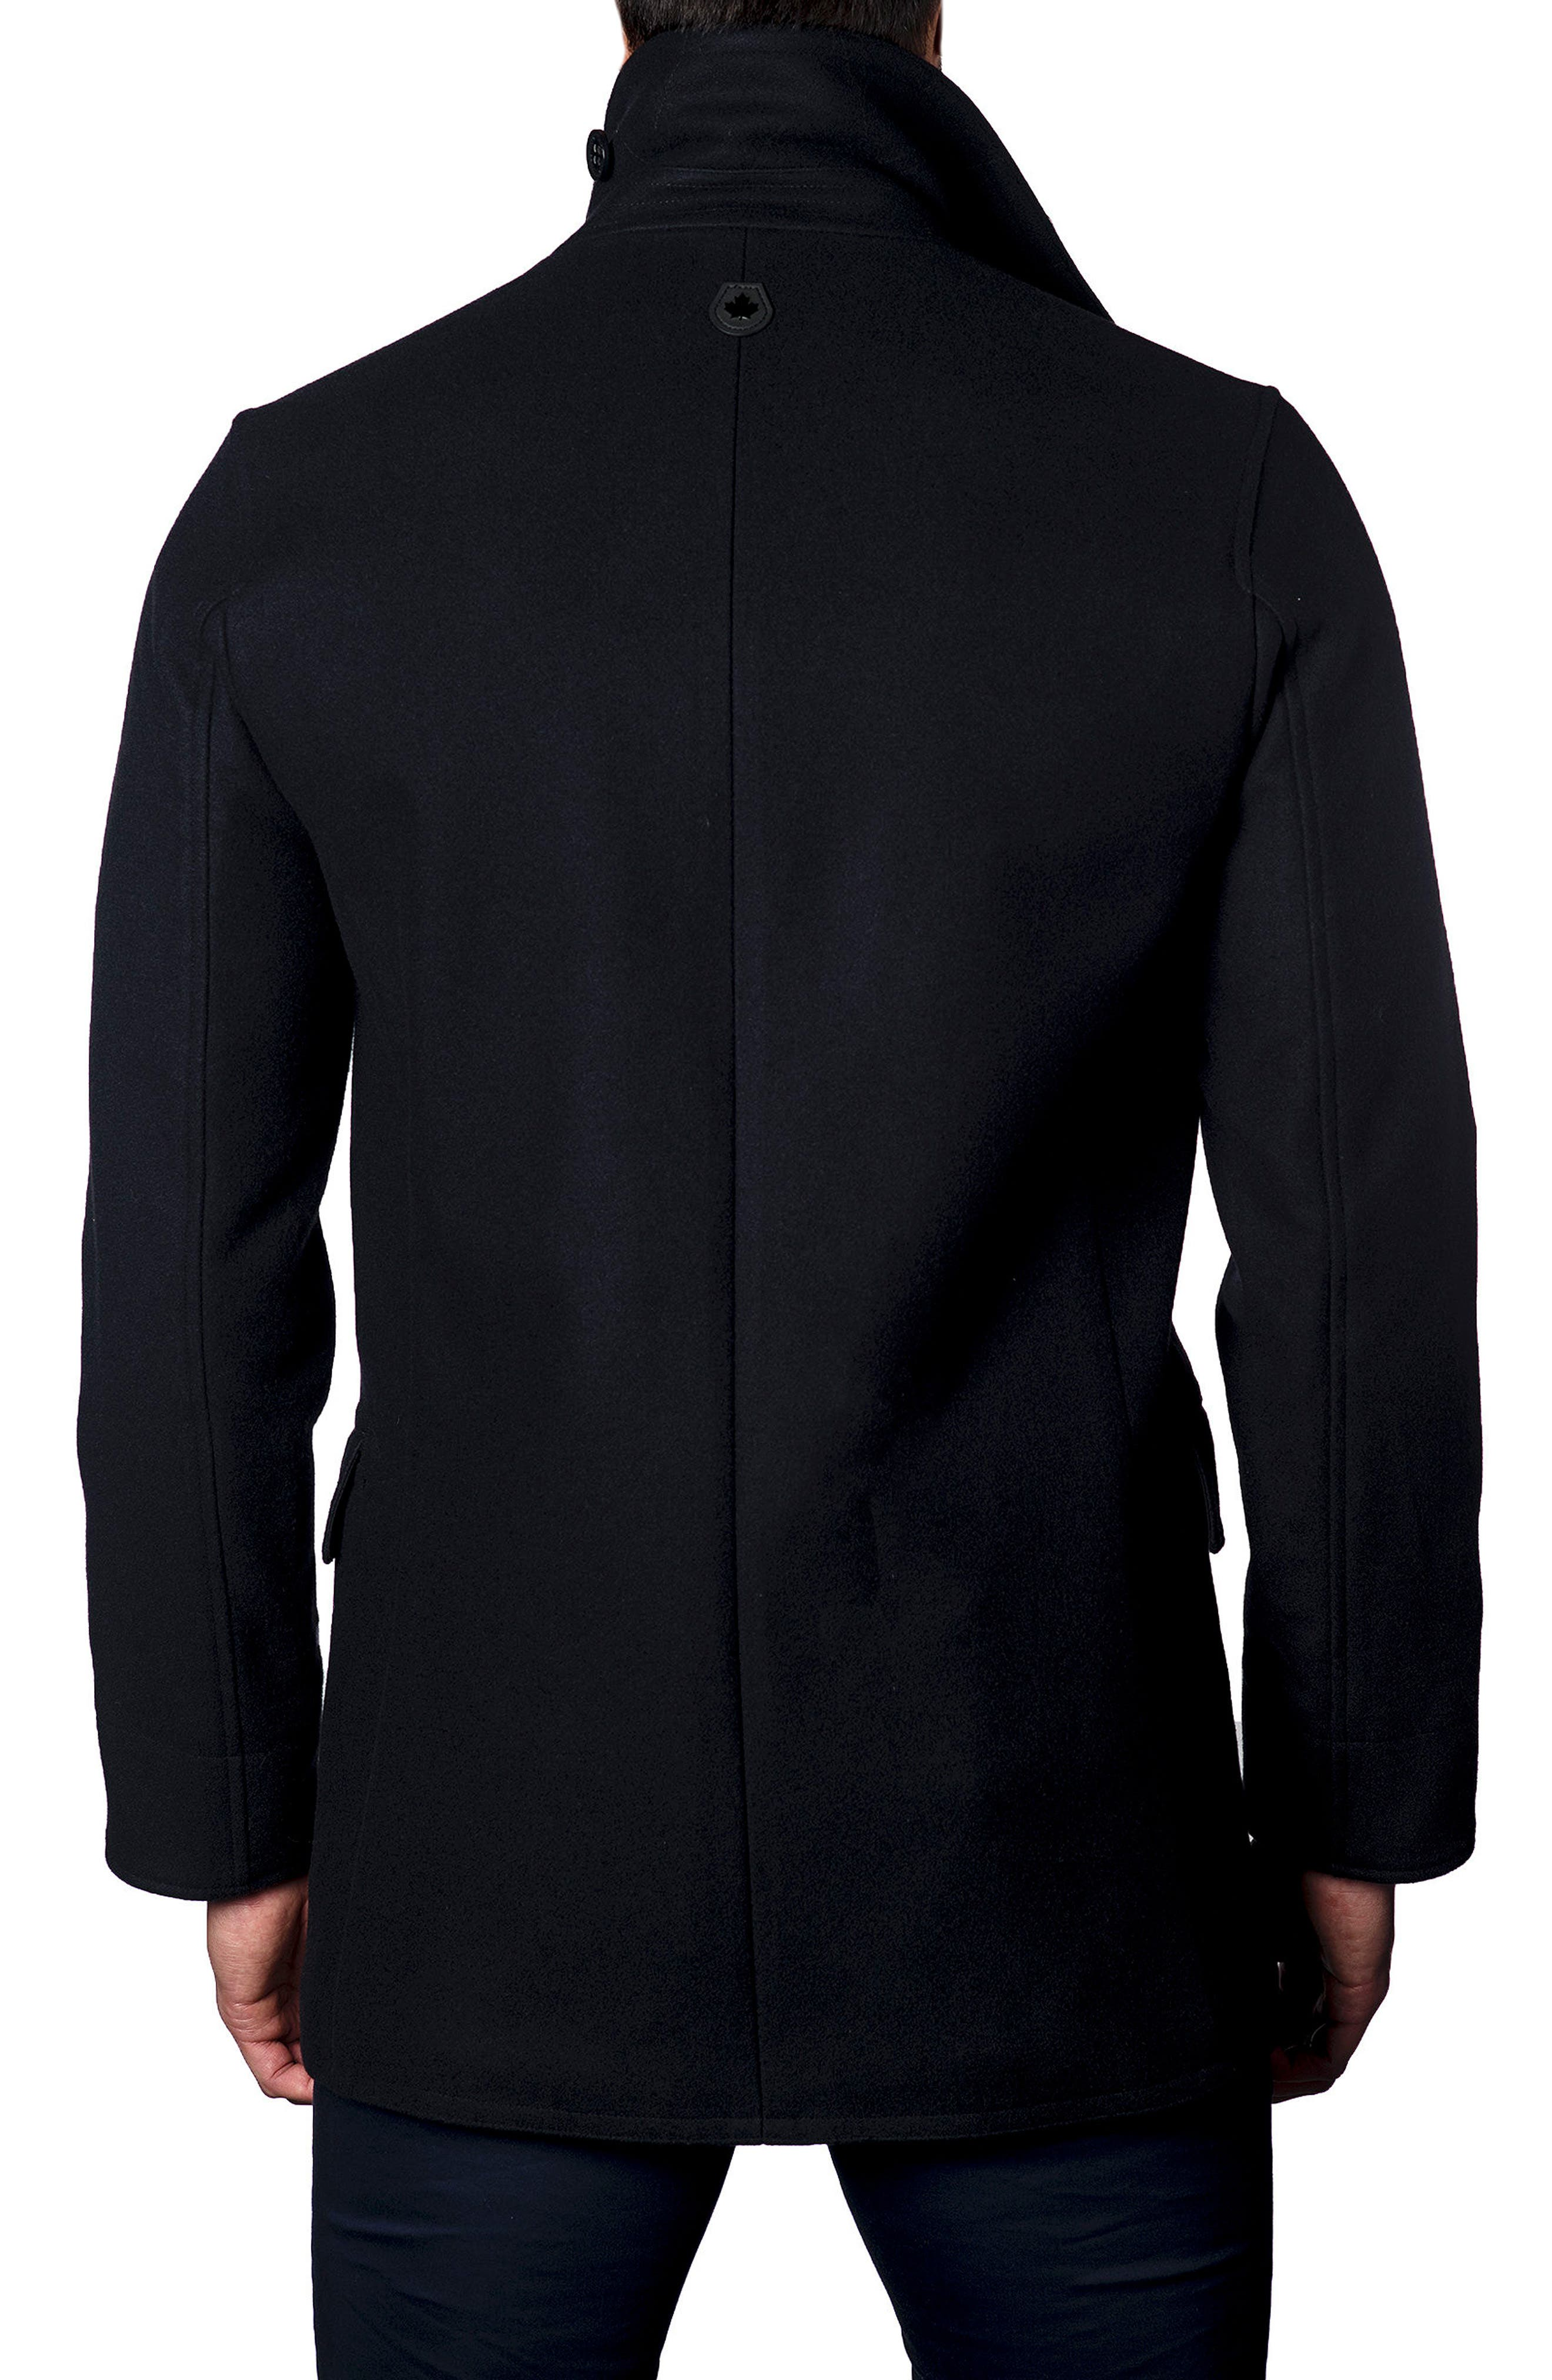 Alternate Image 2  - Jared Lang Wool Blend Double Breasted Peacoat